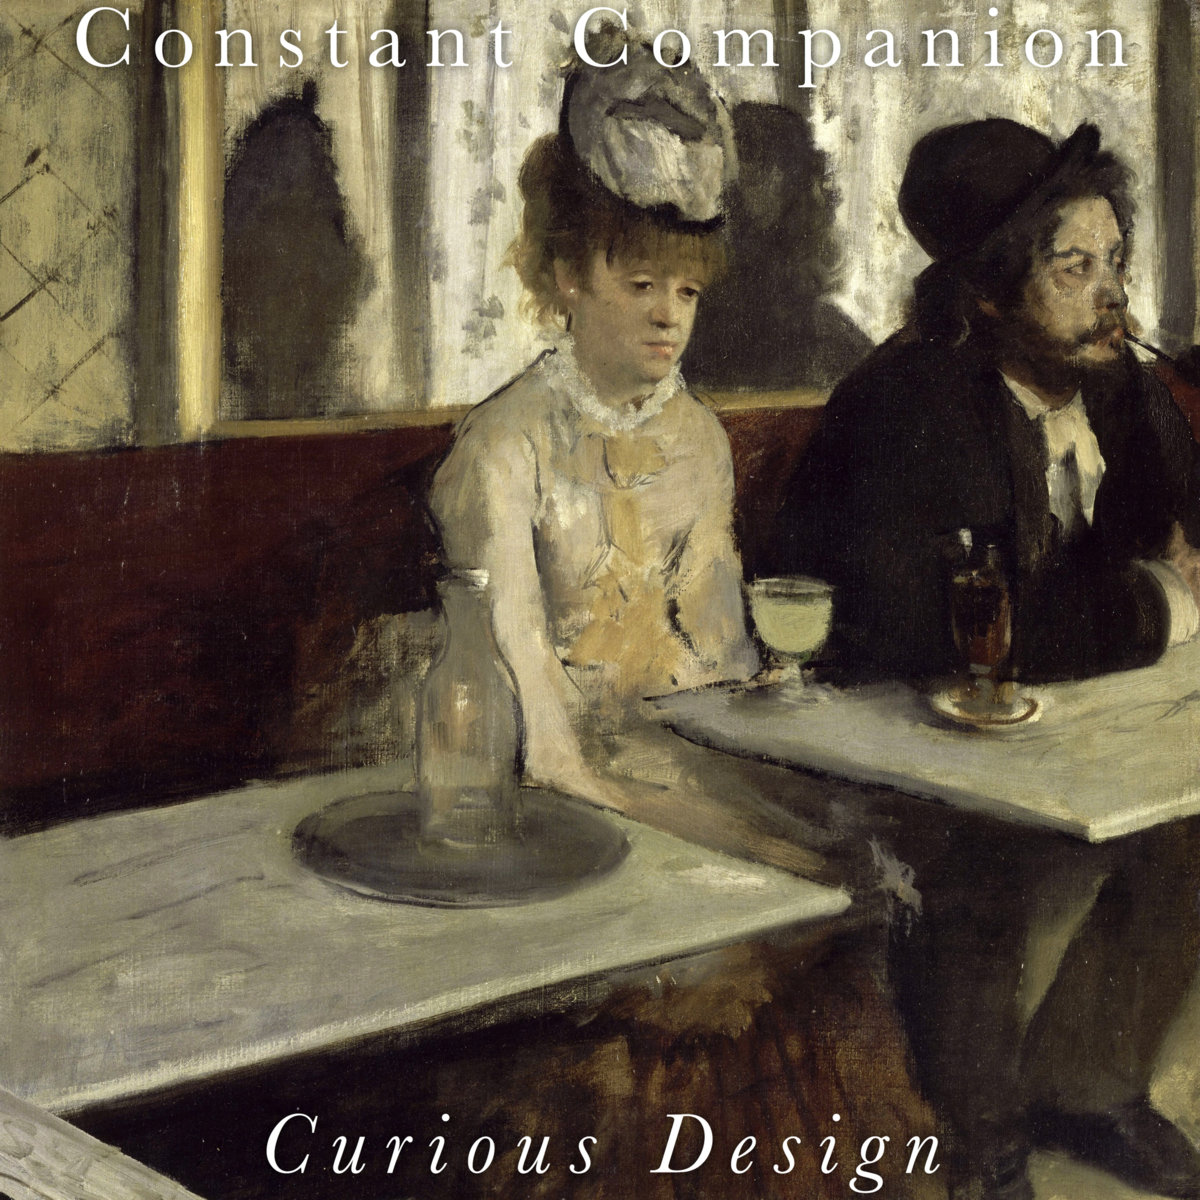 constant companion curious design album art